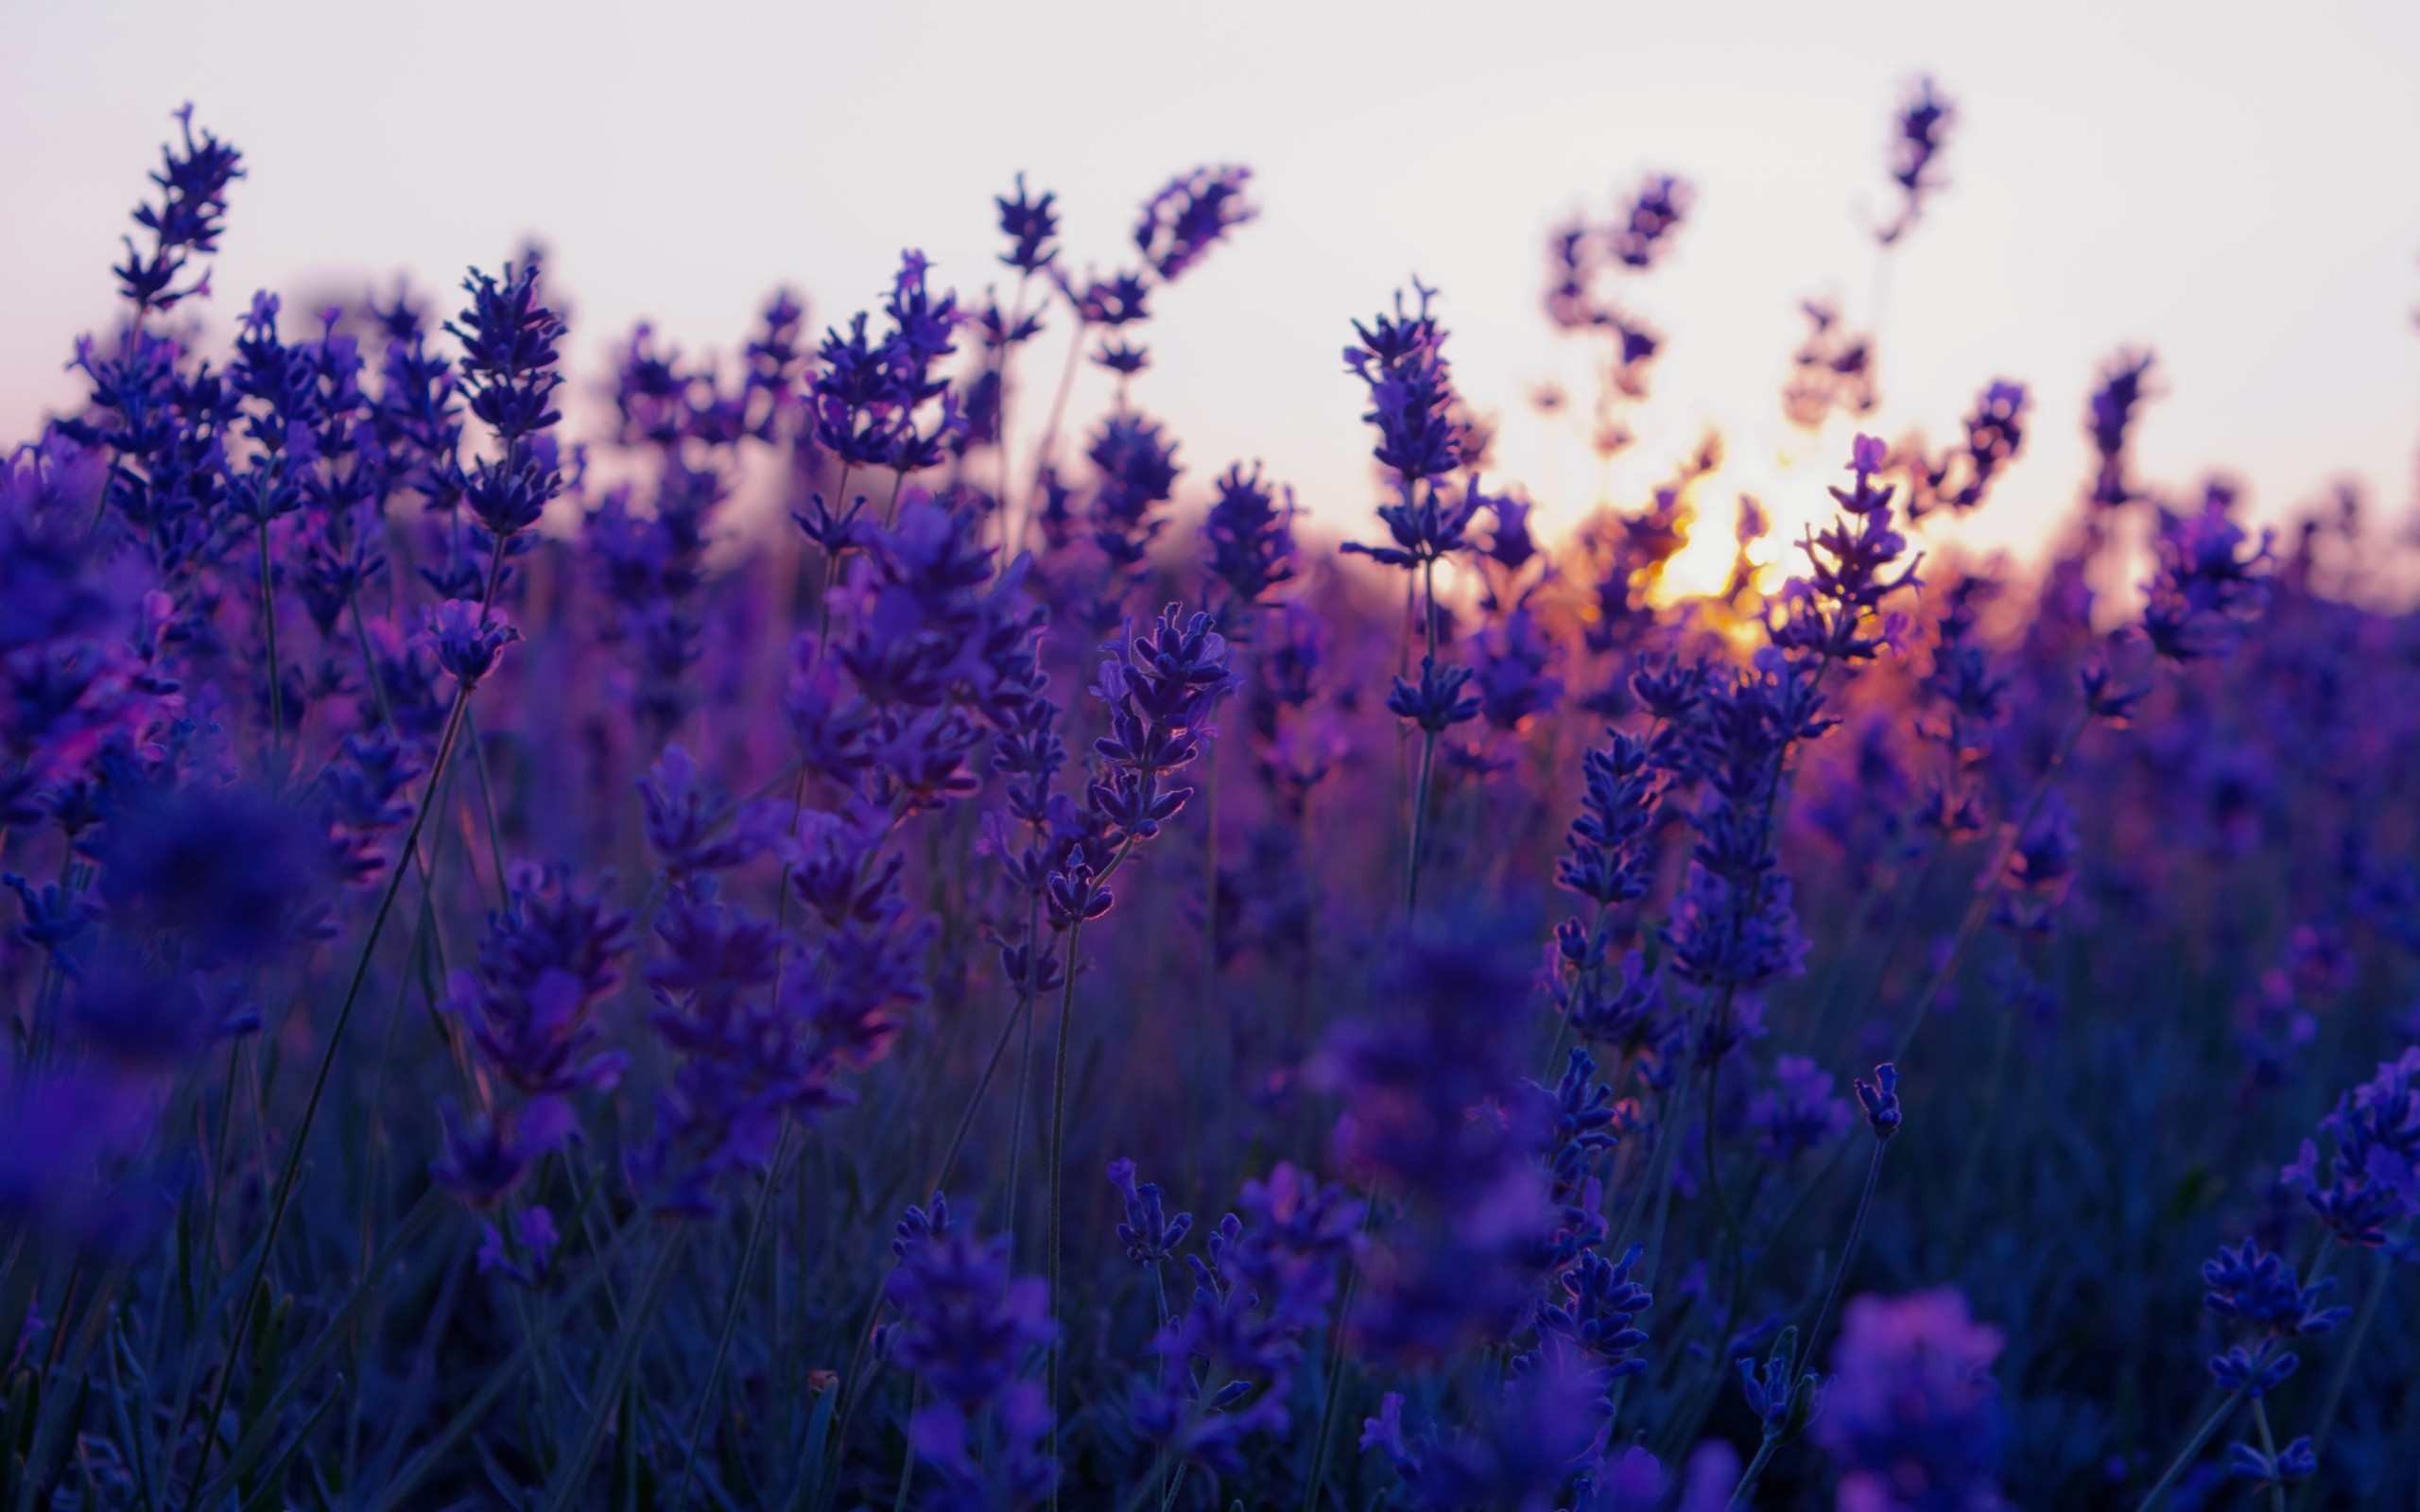 Fall Cell Phone Wallpaper Lavender Background 183 ① Download Free Cool High Resolution